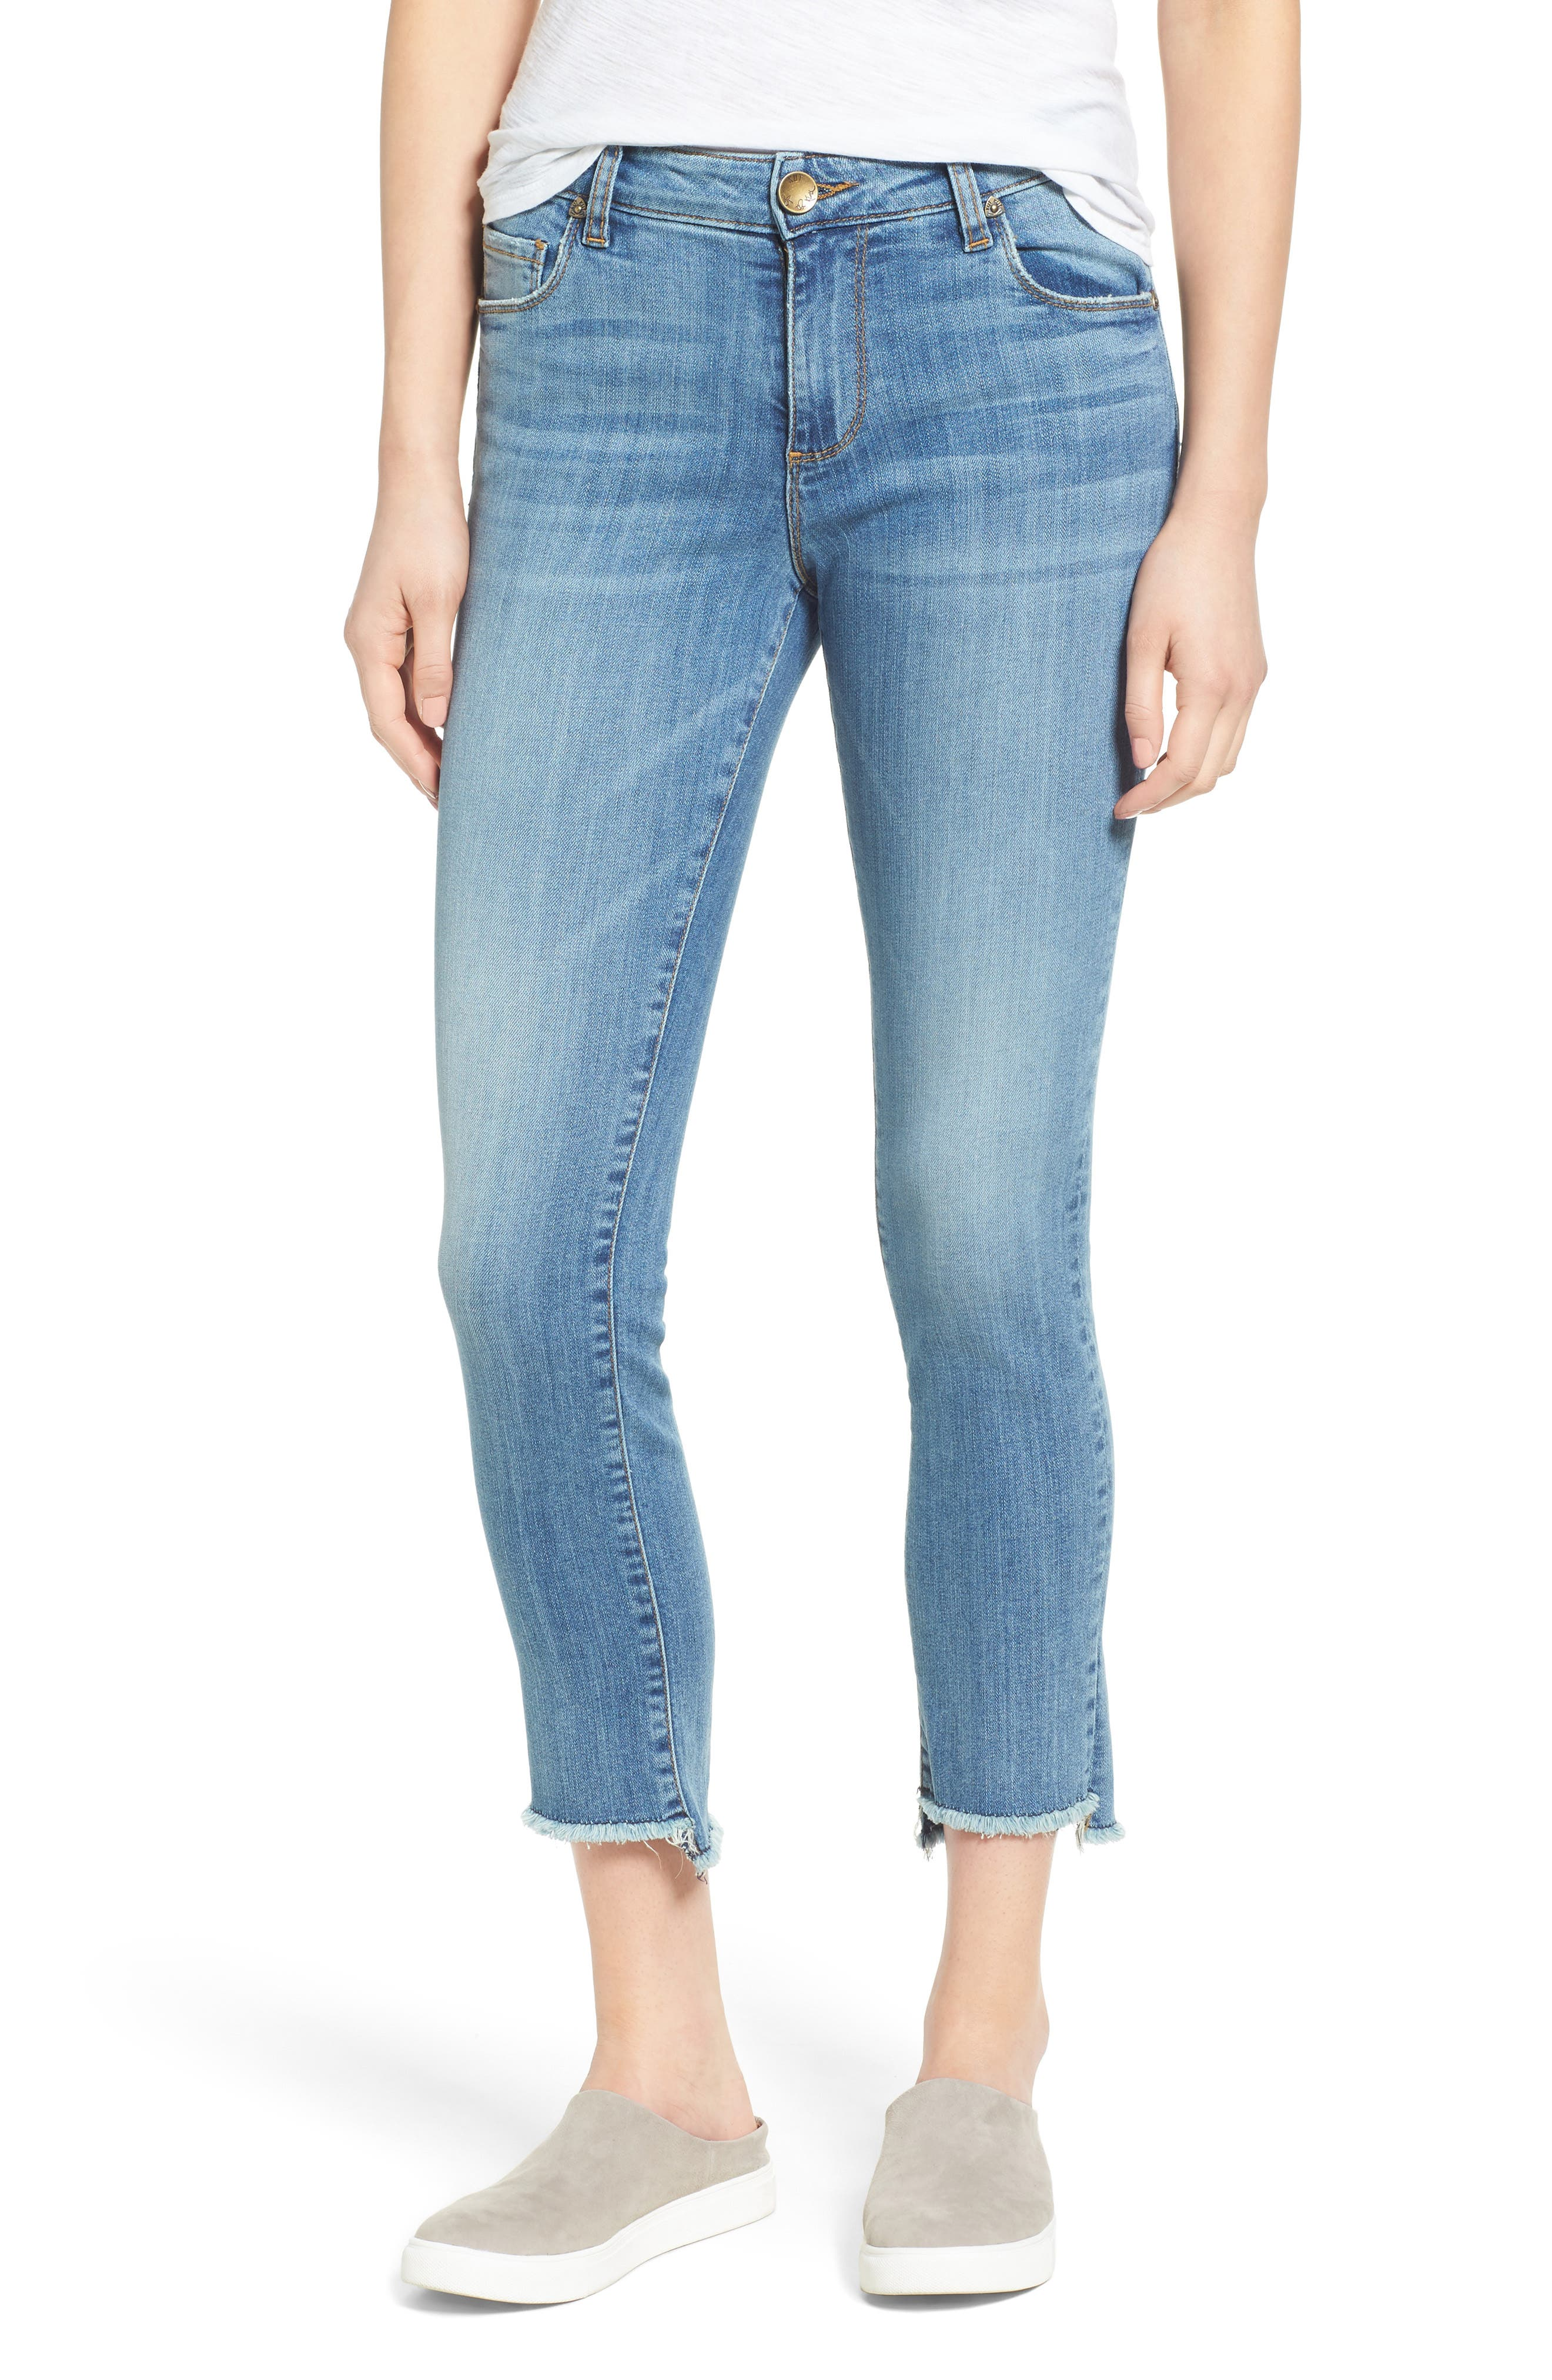 KUT FROM THE KLOTH Reese Frayed Straight Leg Ankle Jeans, Main, color, 426